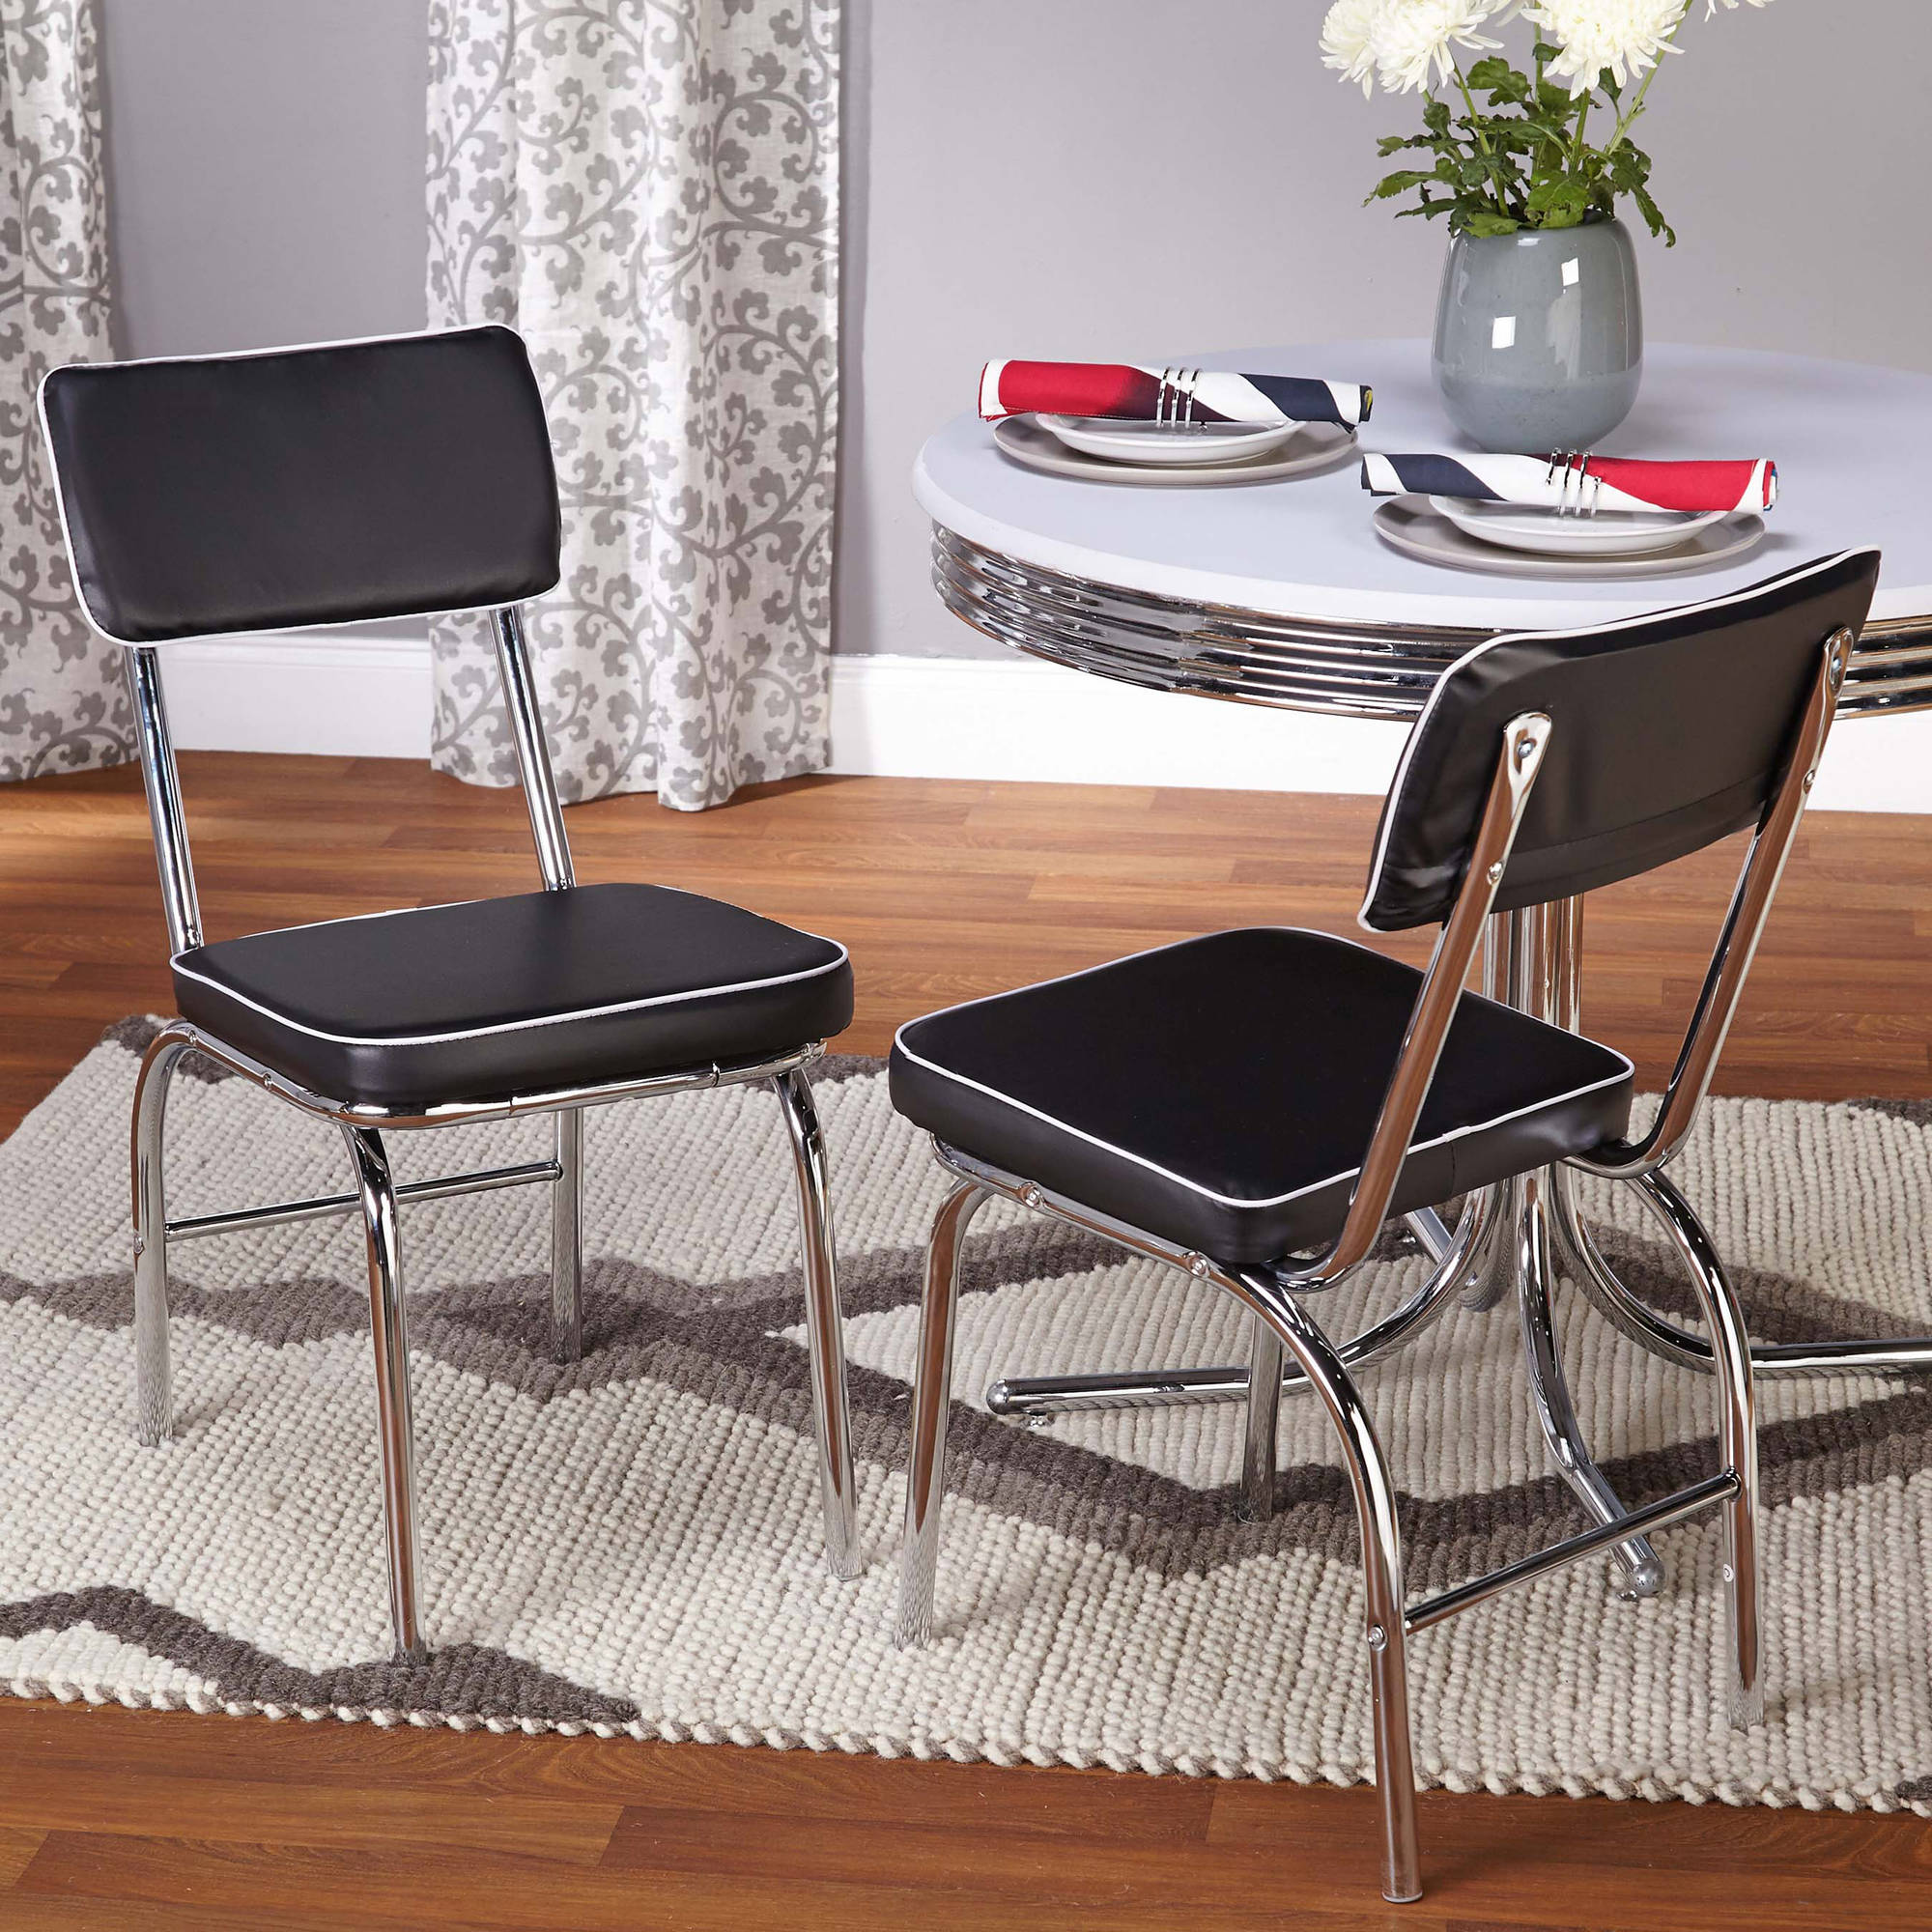 Retro Dining Chairs, Set of 2, Black